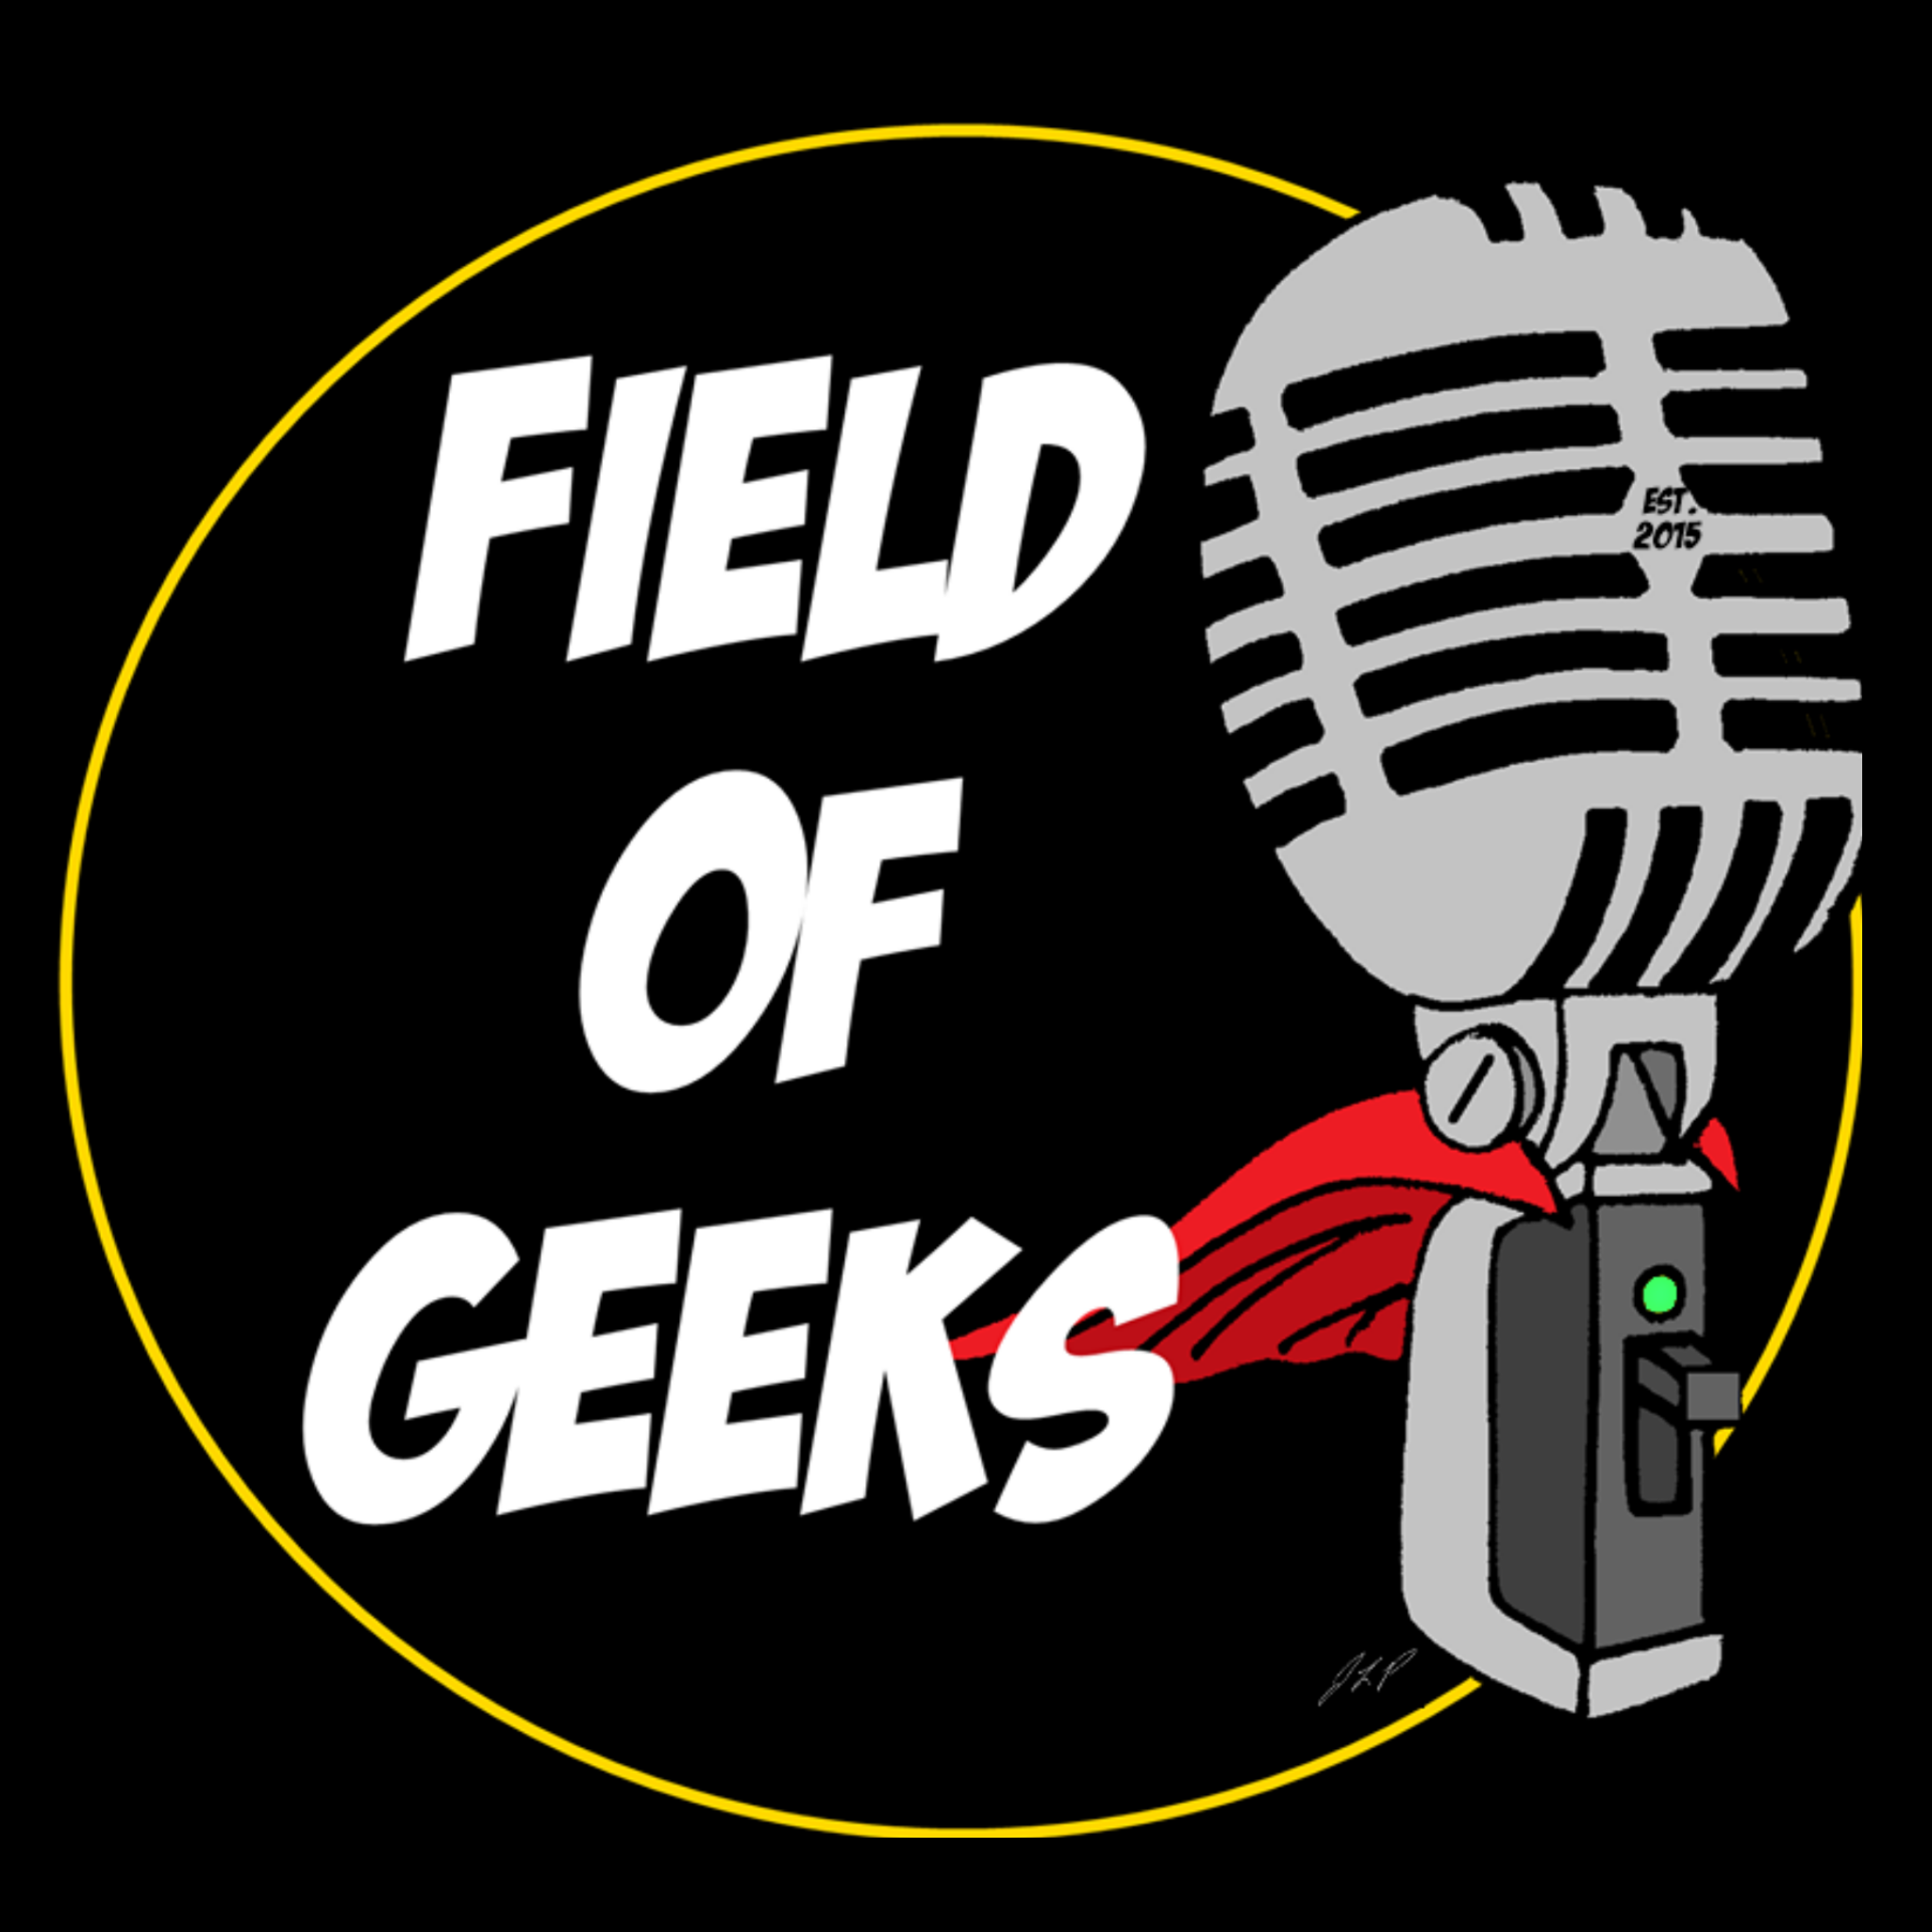 Field of Geeks